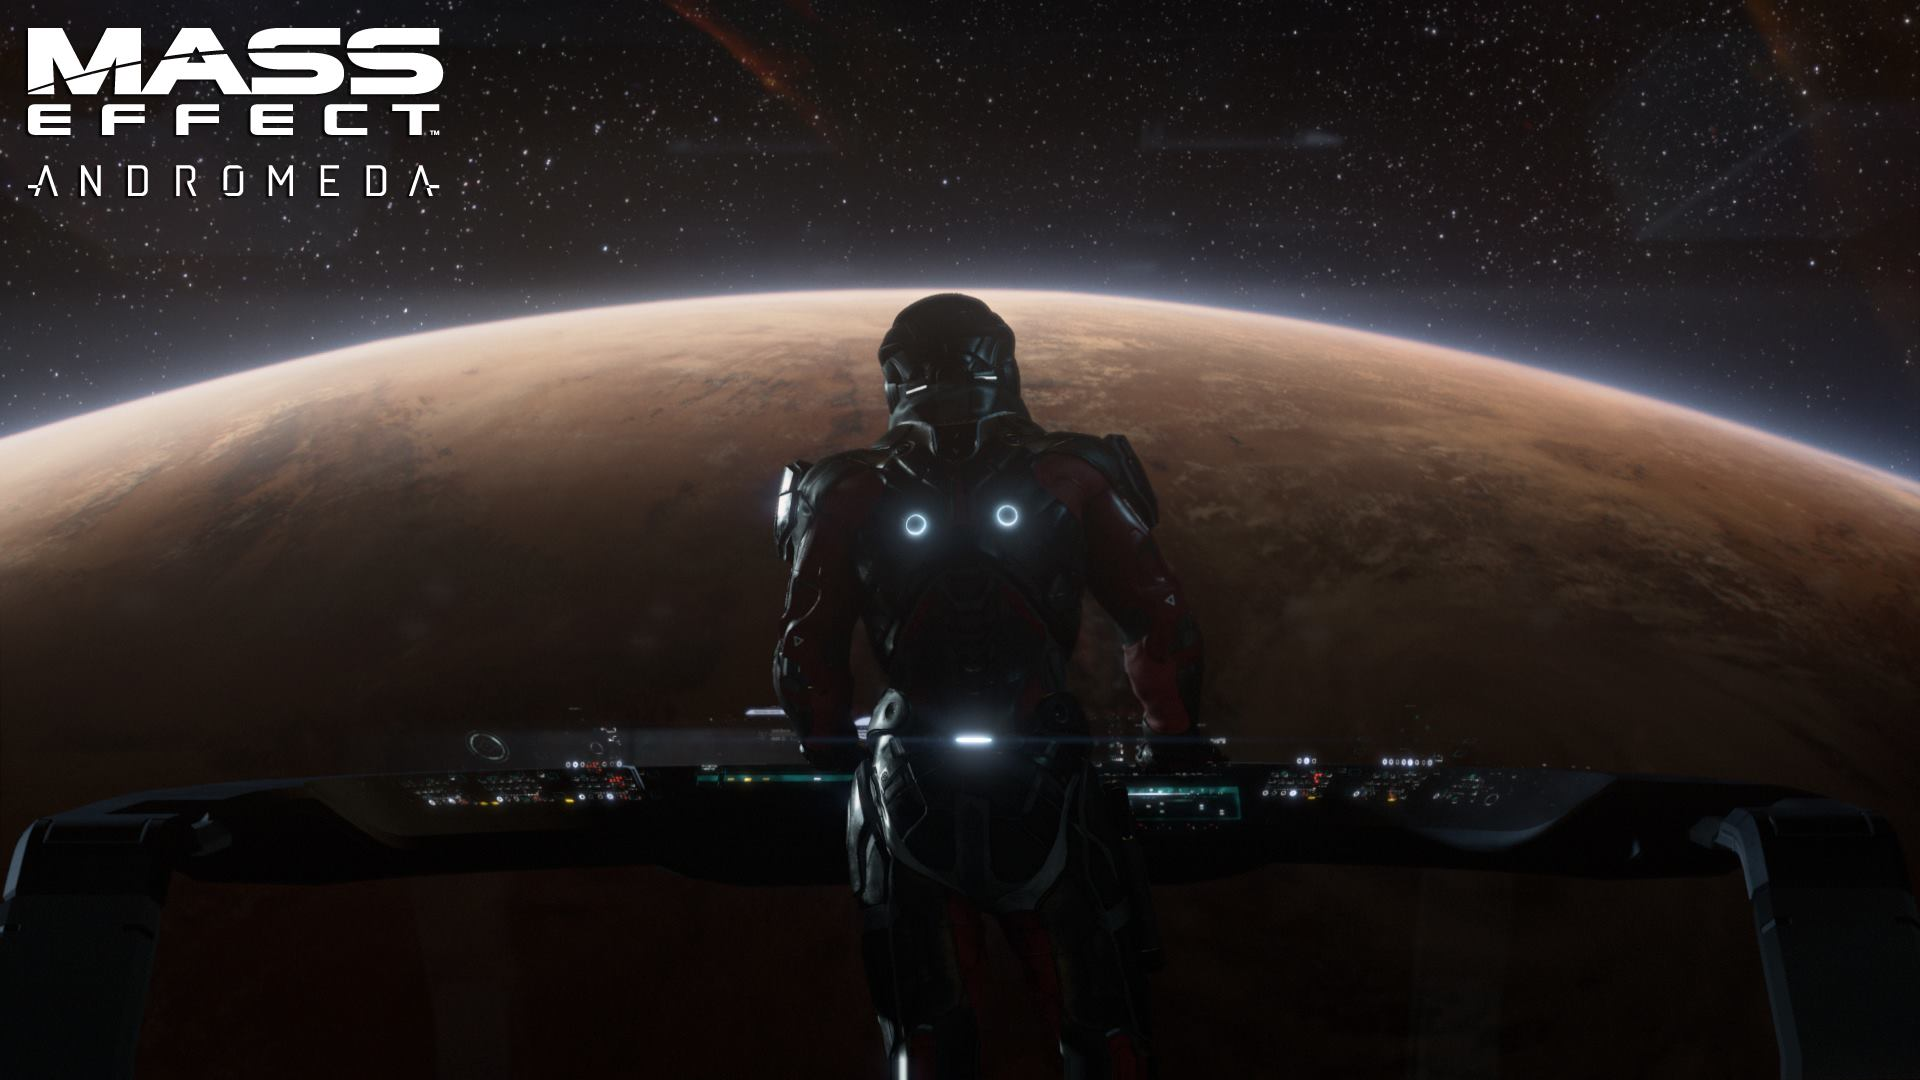 Mass Effect 3 Andromeda Wallpaper Planet Image Dark Force